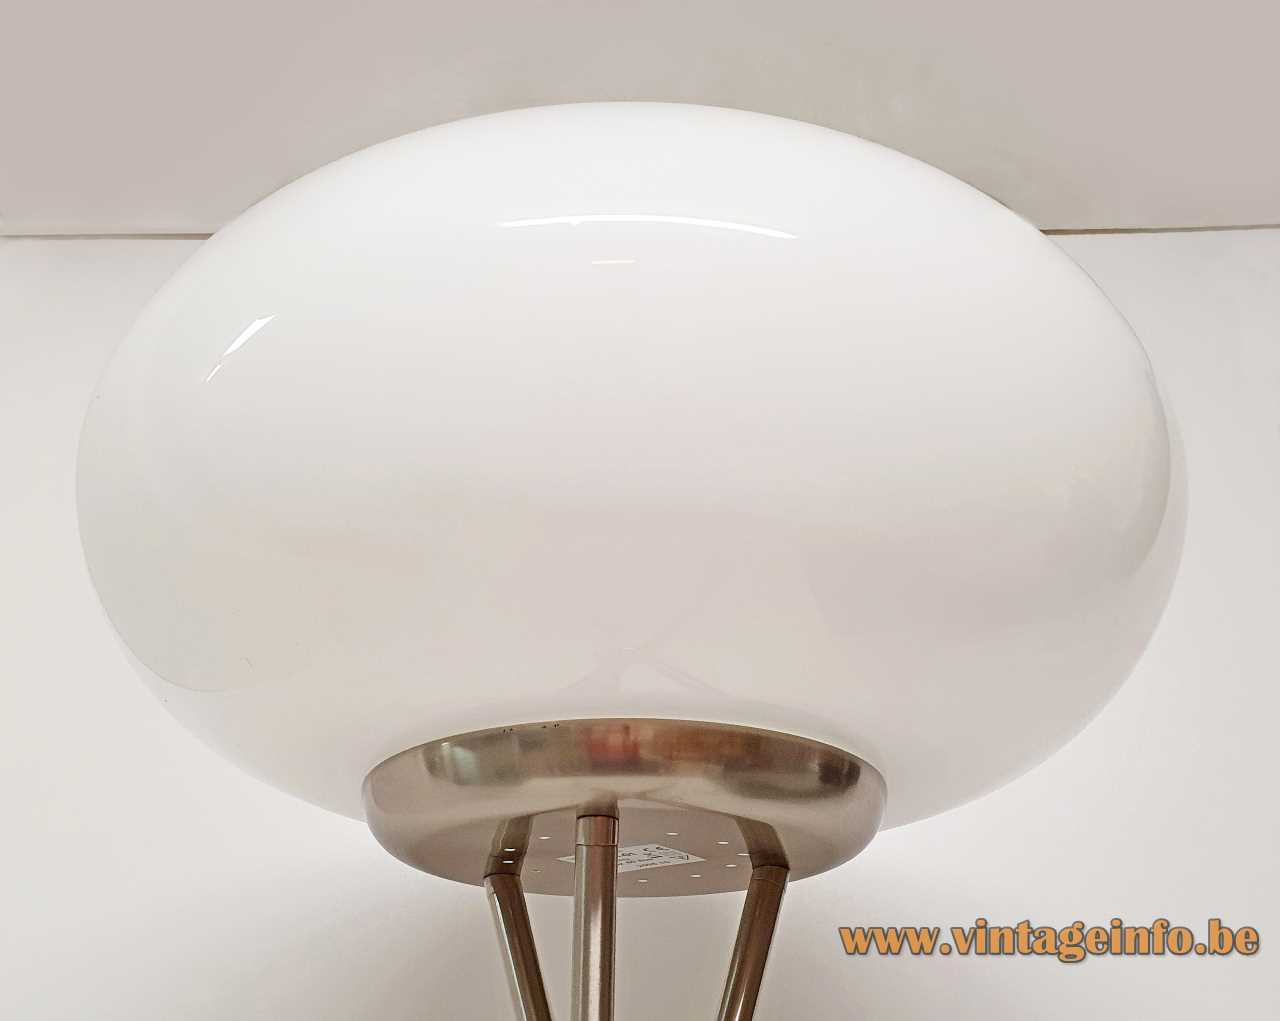 TRIO Leuchten Olympic floor lamp chrome tripod base opal oval glass globe lampshade 1990s 2000s Germany